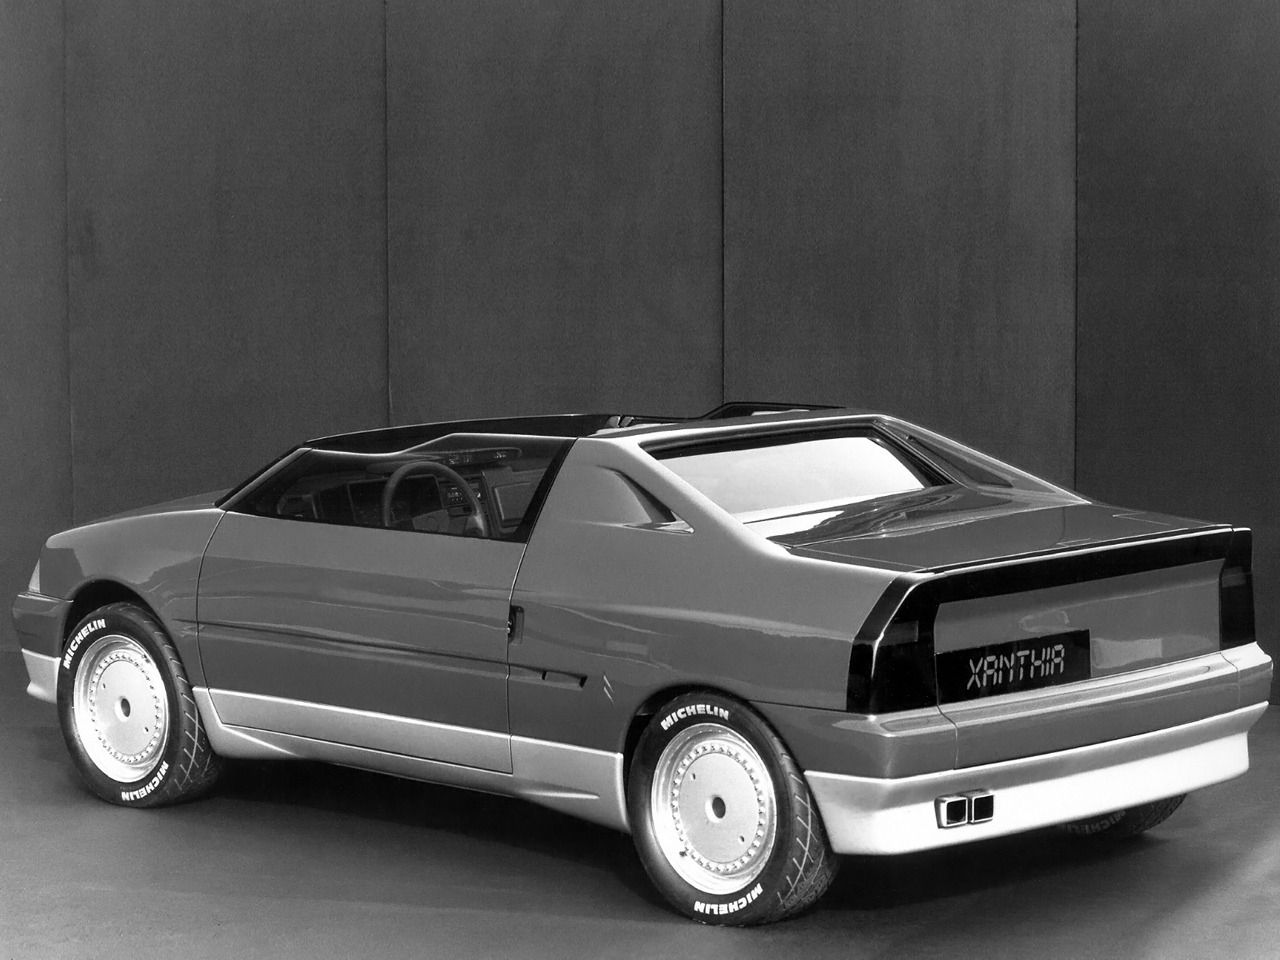 citro n xanthia concept 1986 old concept cars. Black Bedroom Furniture Sets. Home Design Ideas